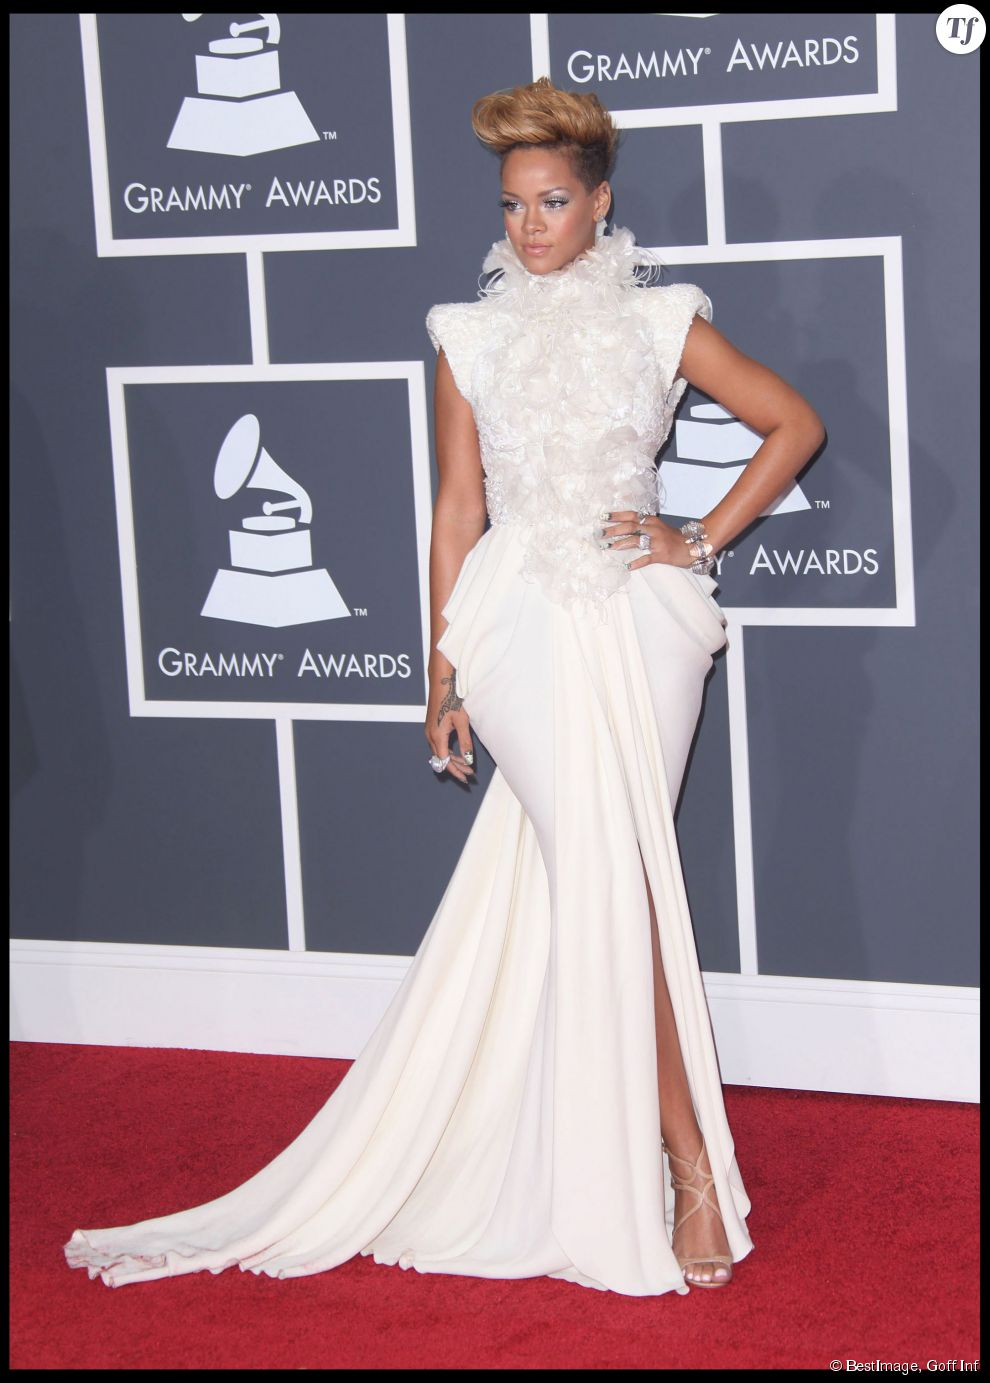 2010 au grammy awards rihanna reste chic dans une robe. Black Bedroom Furniture Sets. Home Design Ideas